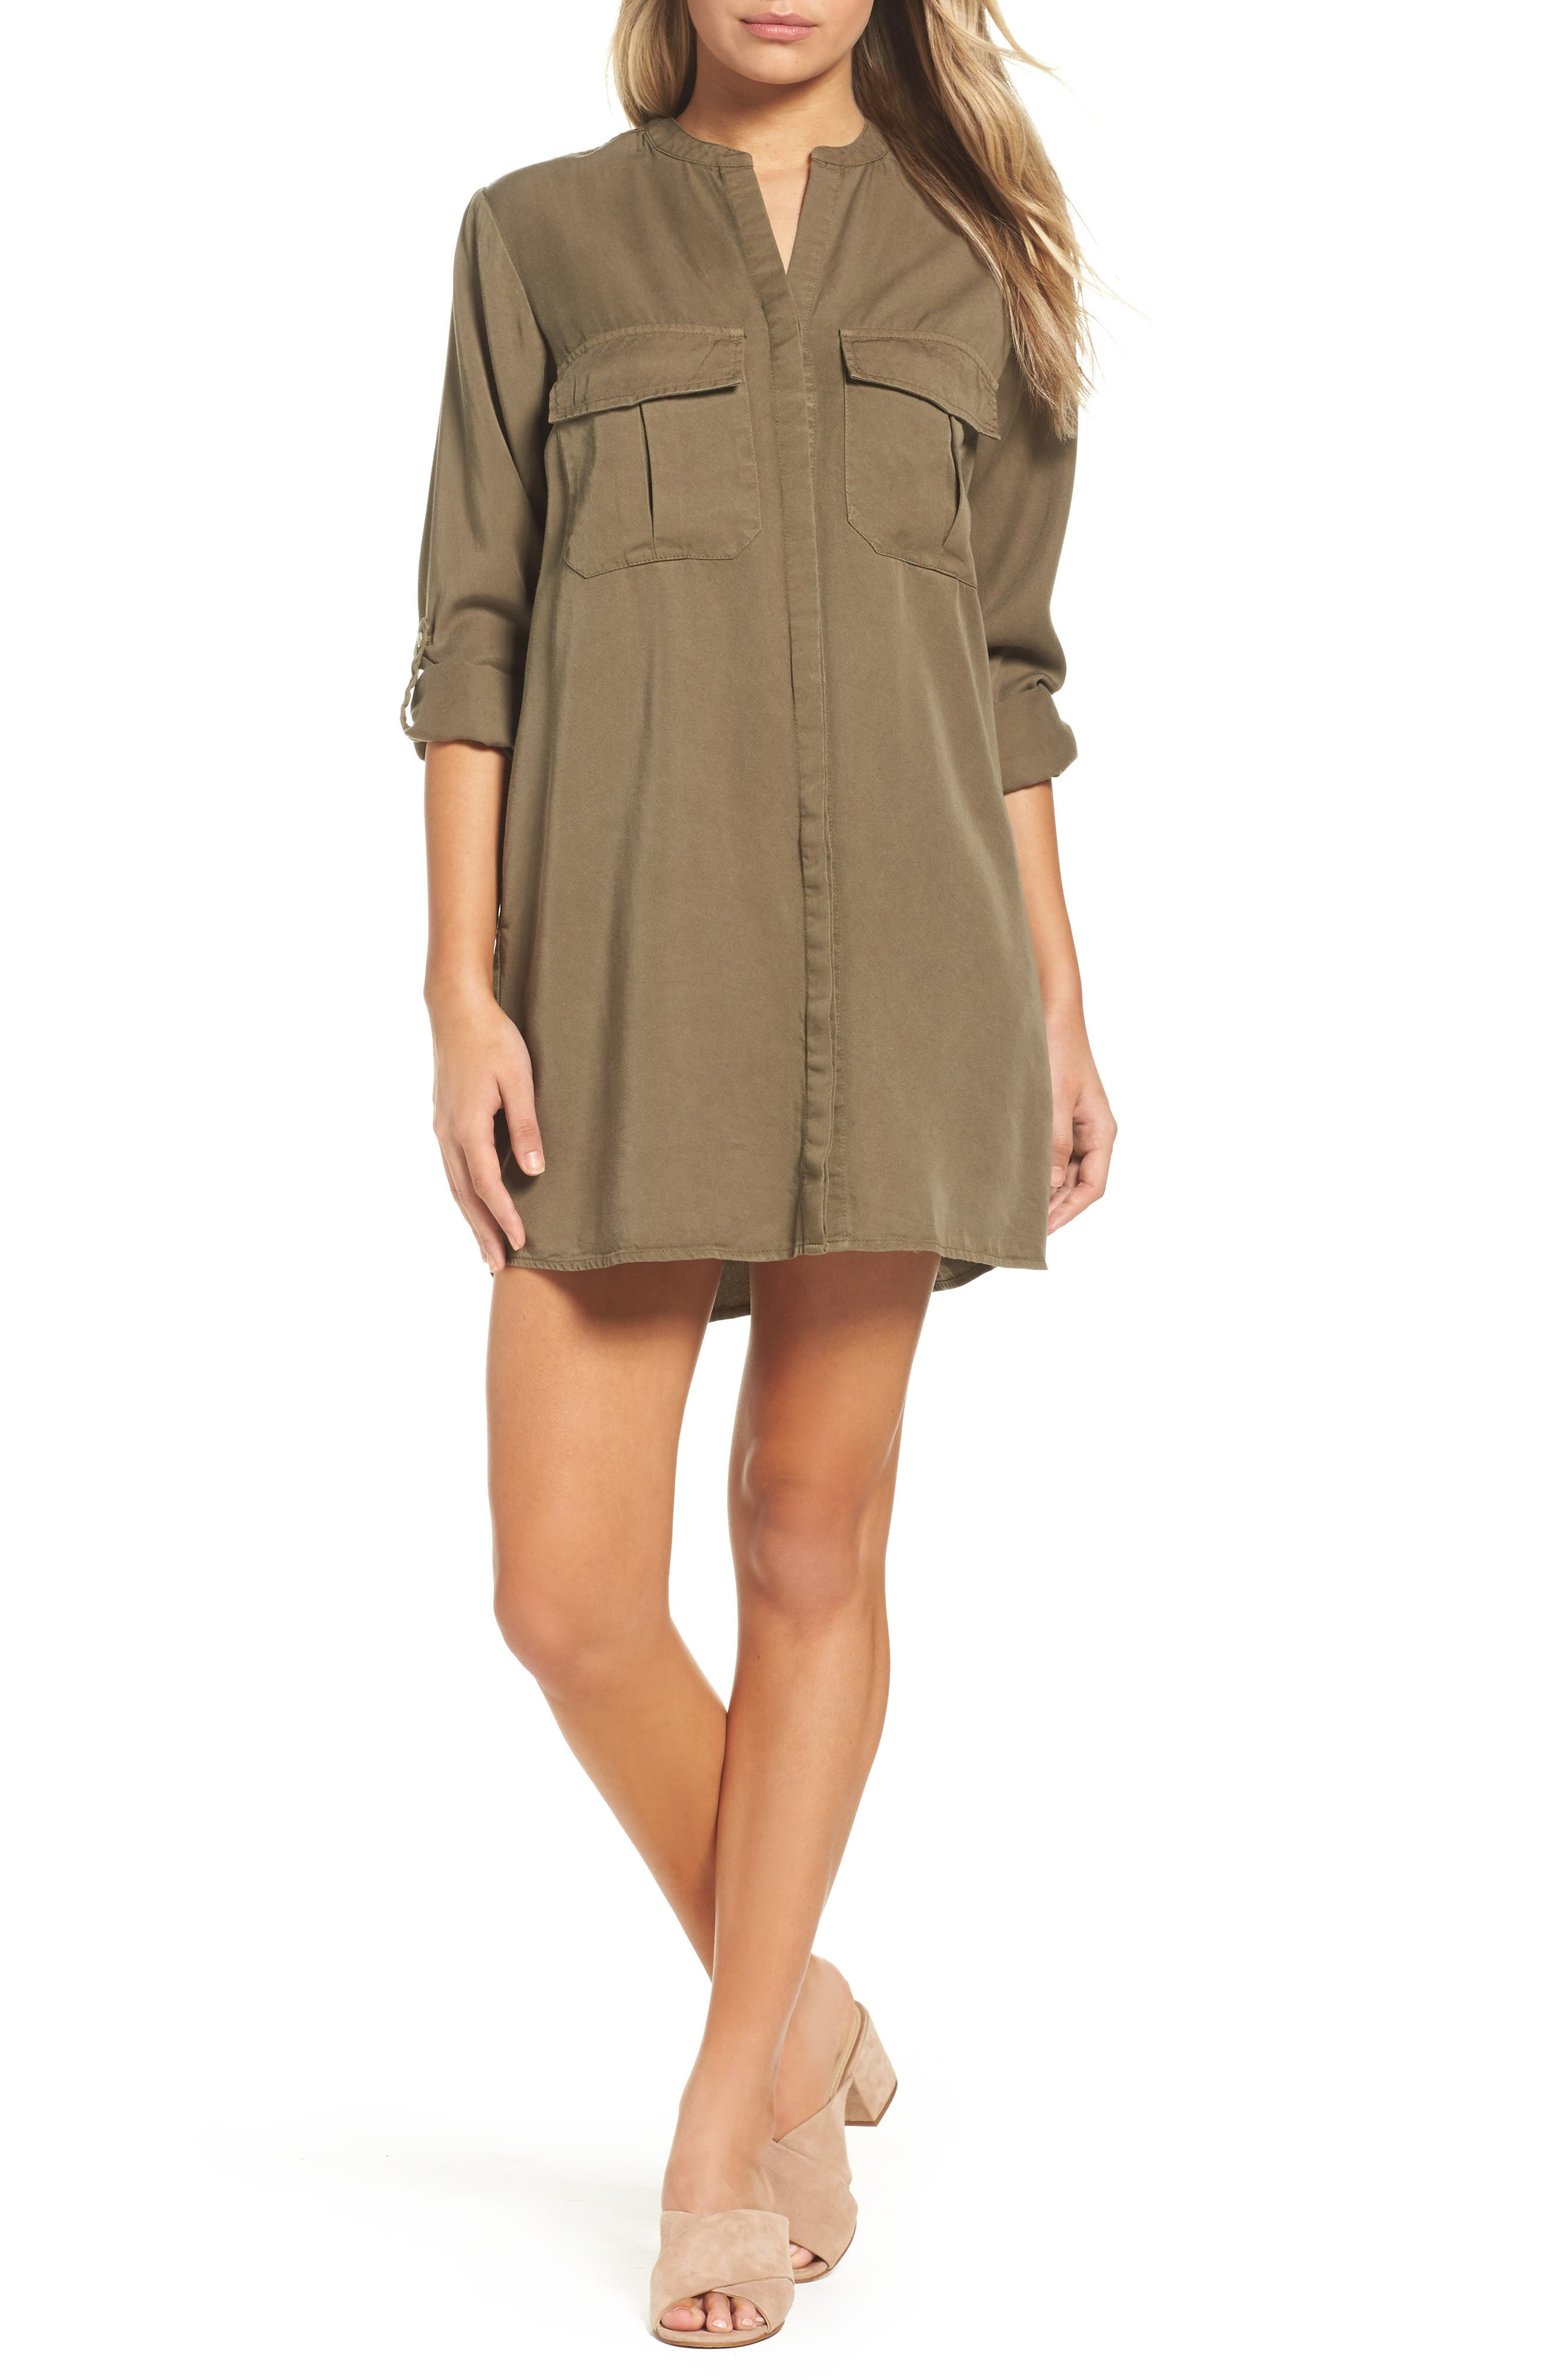 Cooper Shirtdress,                         Main,                         color, Military Green